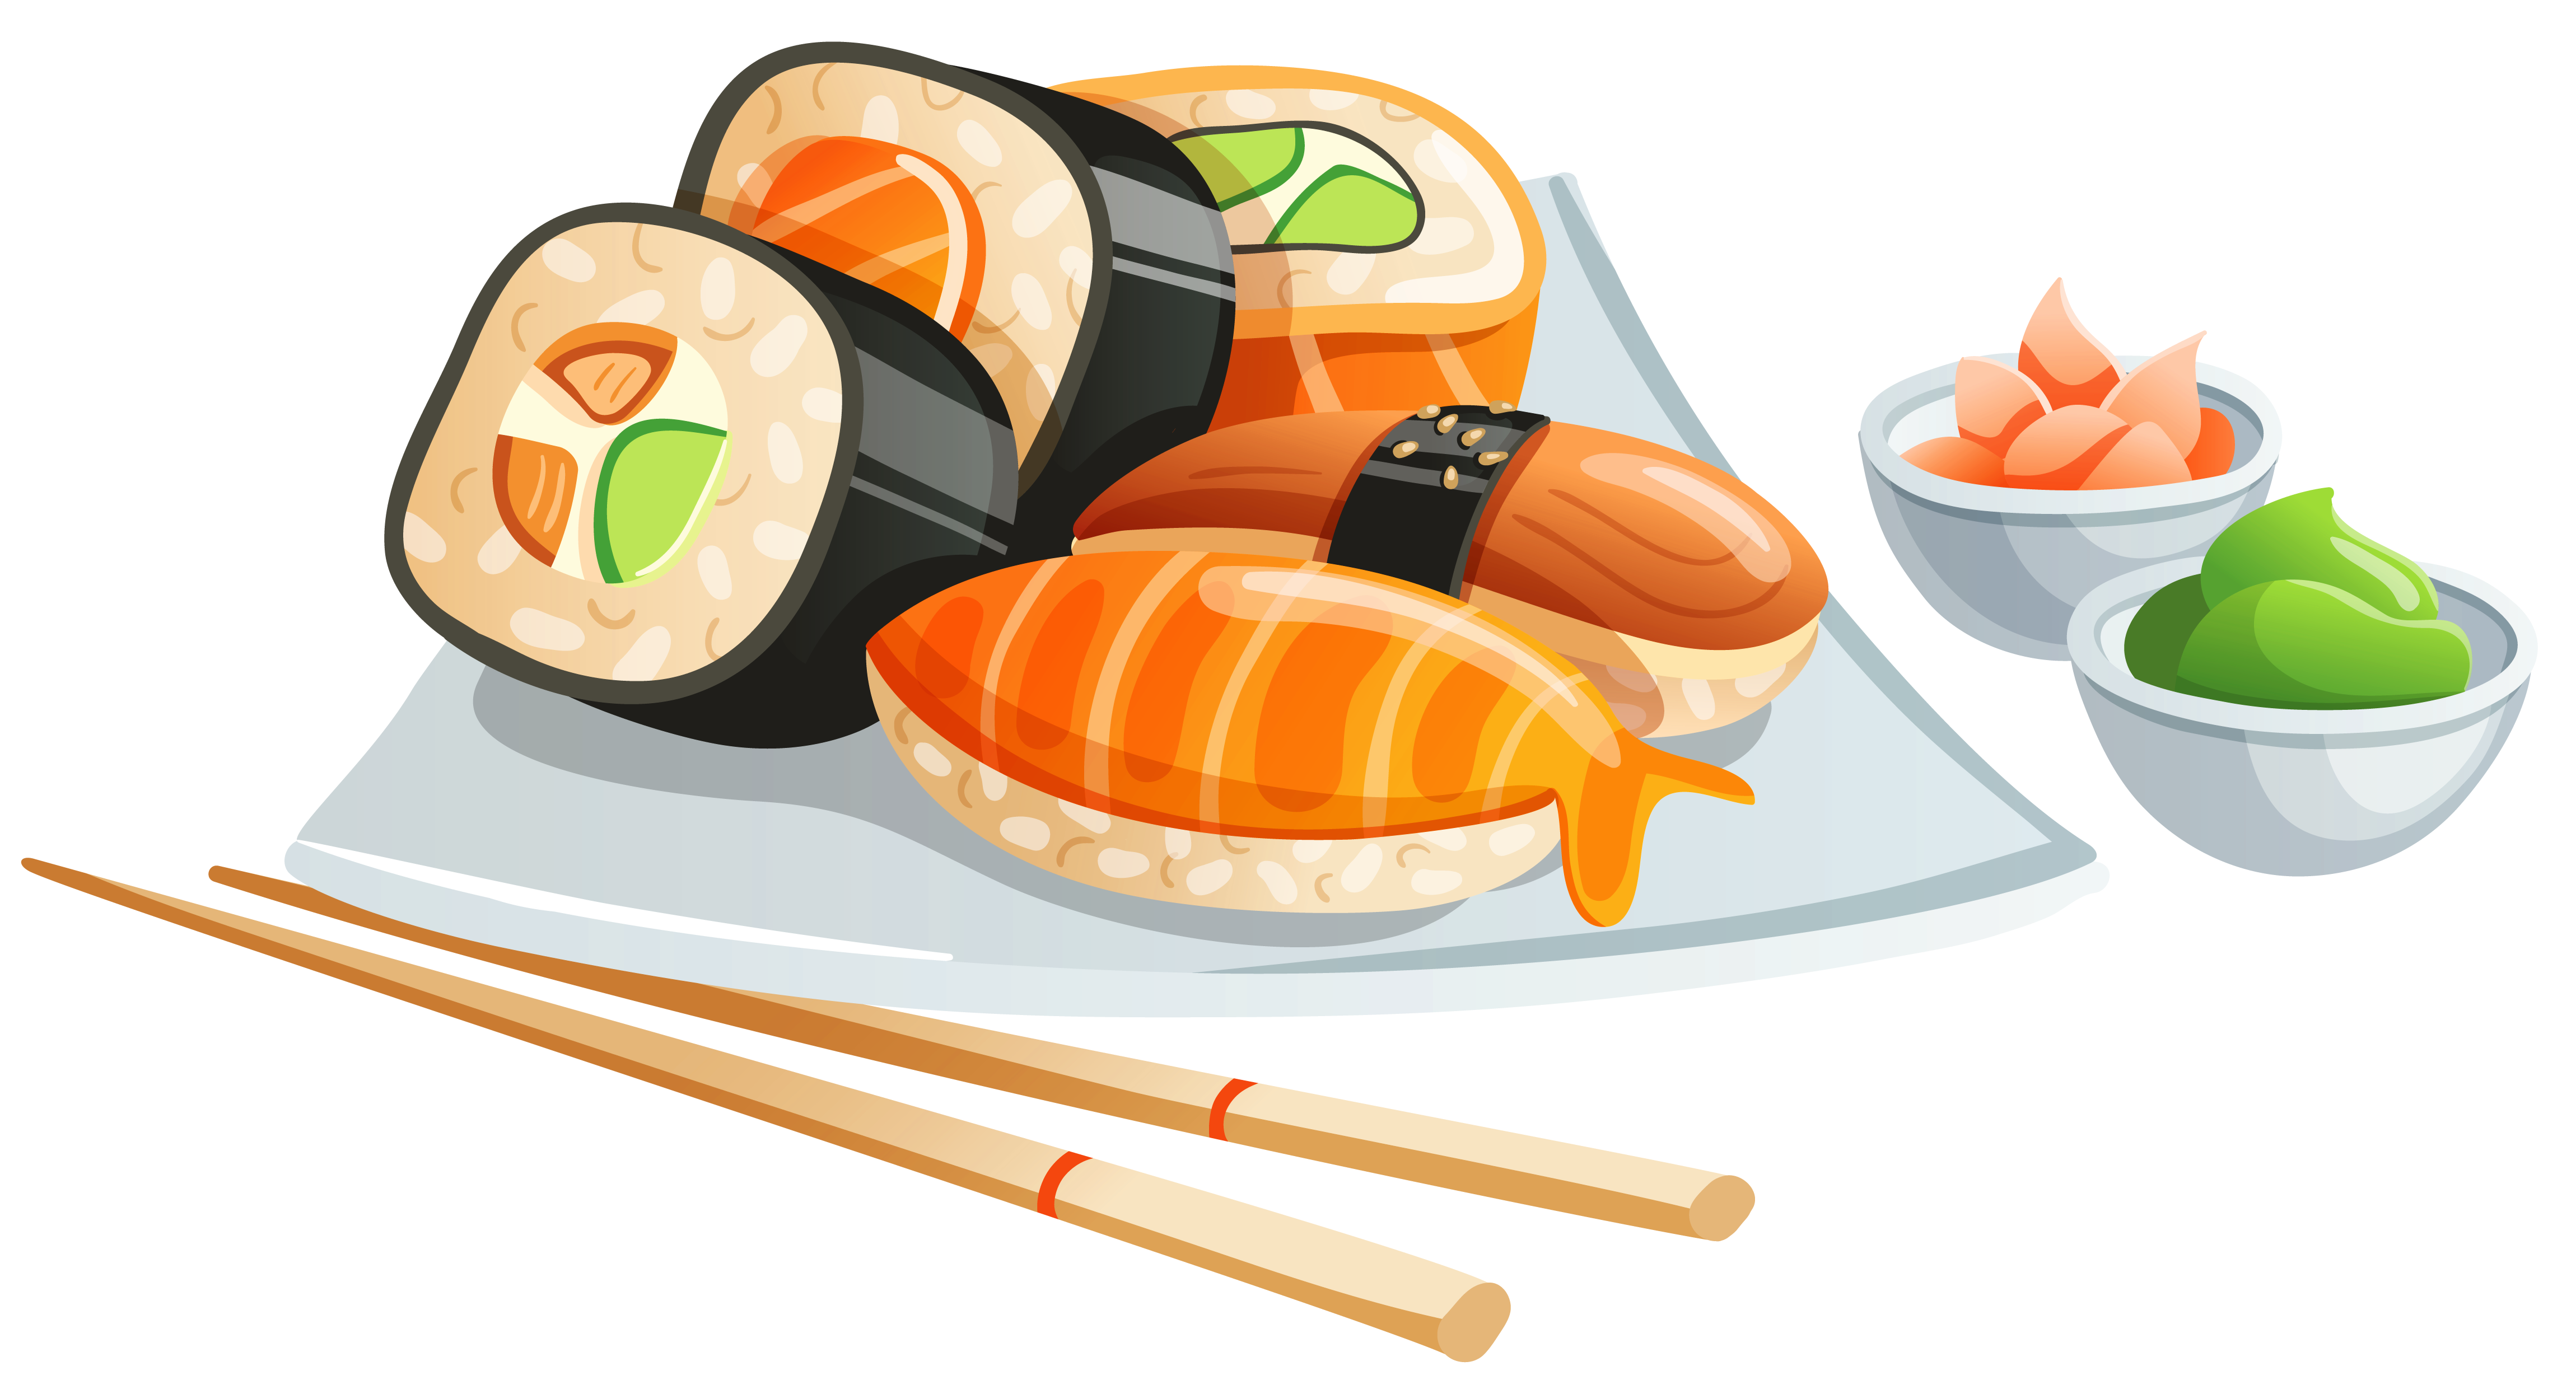 Clipart image gallery yopriceville. Sushi png image freeuse stock